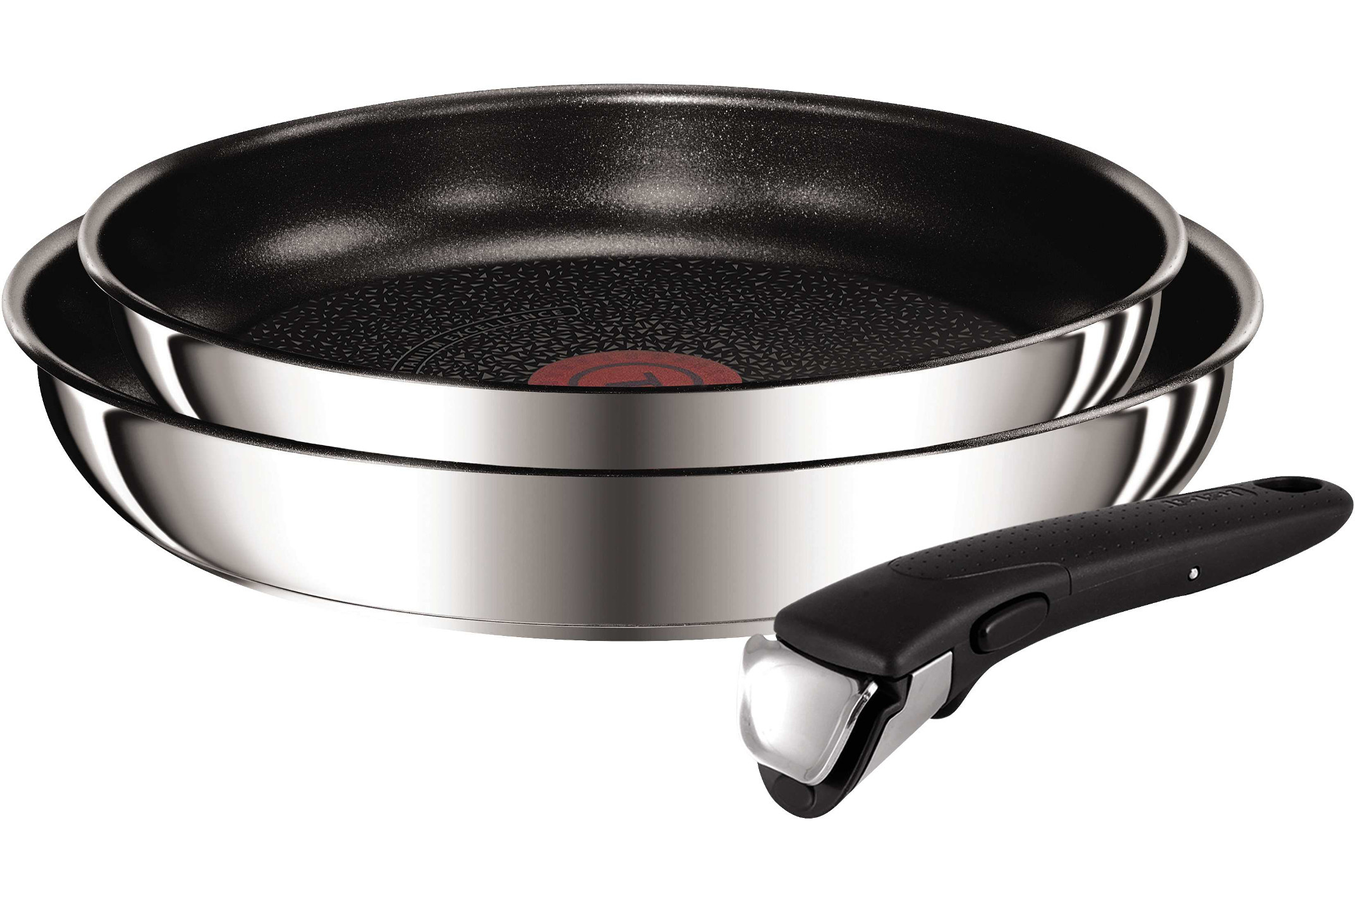 Poele sauteuse tefal ingenio preference 3 pieces poeles 24 28 cm ingenio preference 3p - Poele pour induction tefal ...